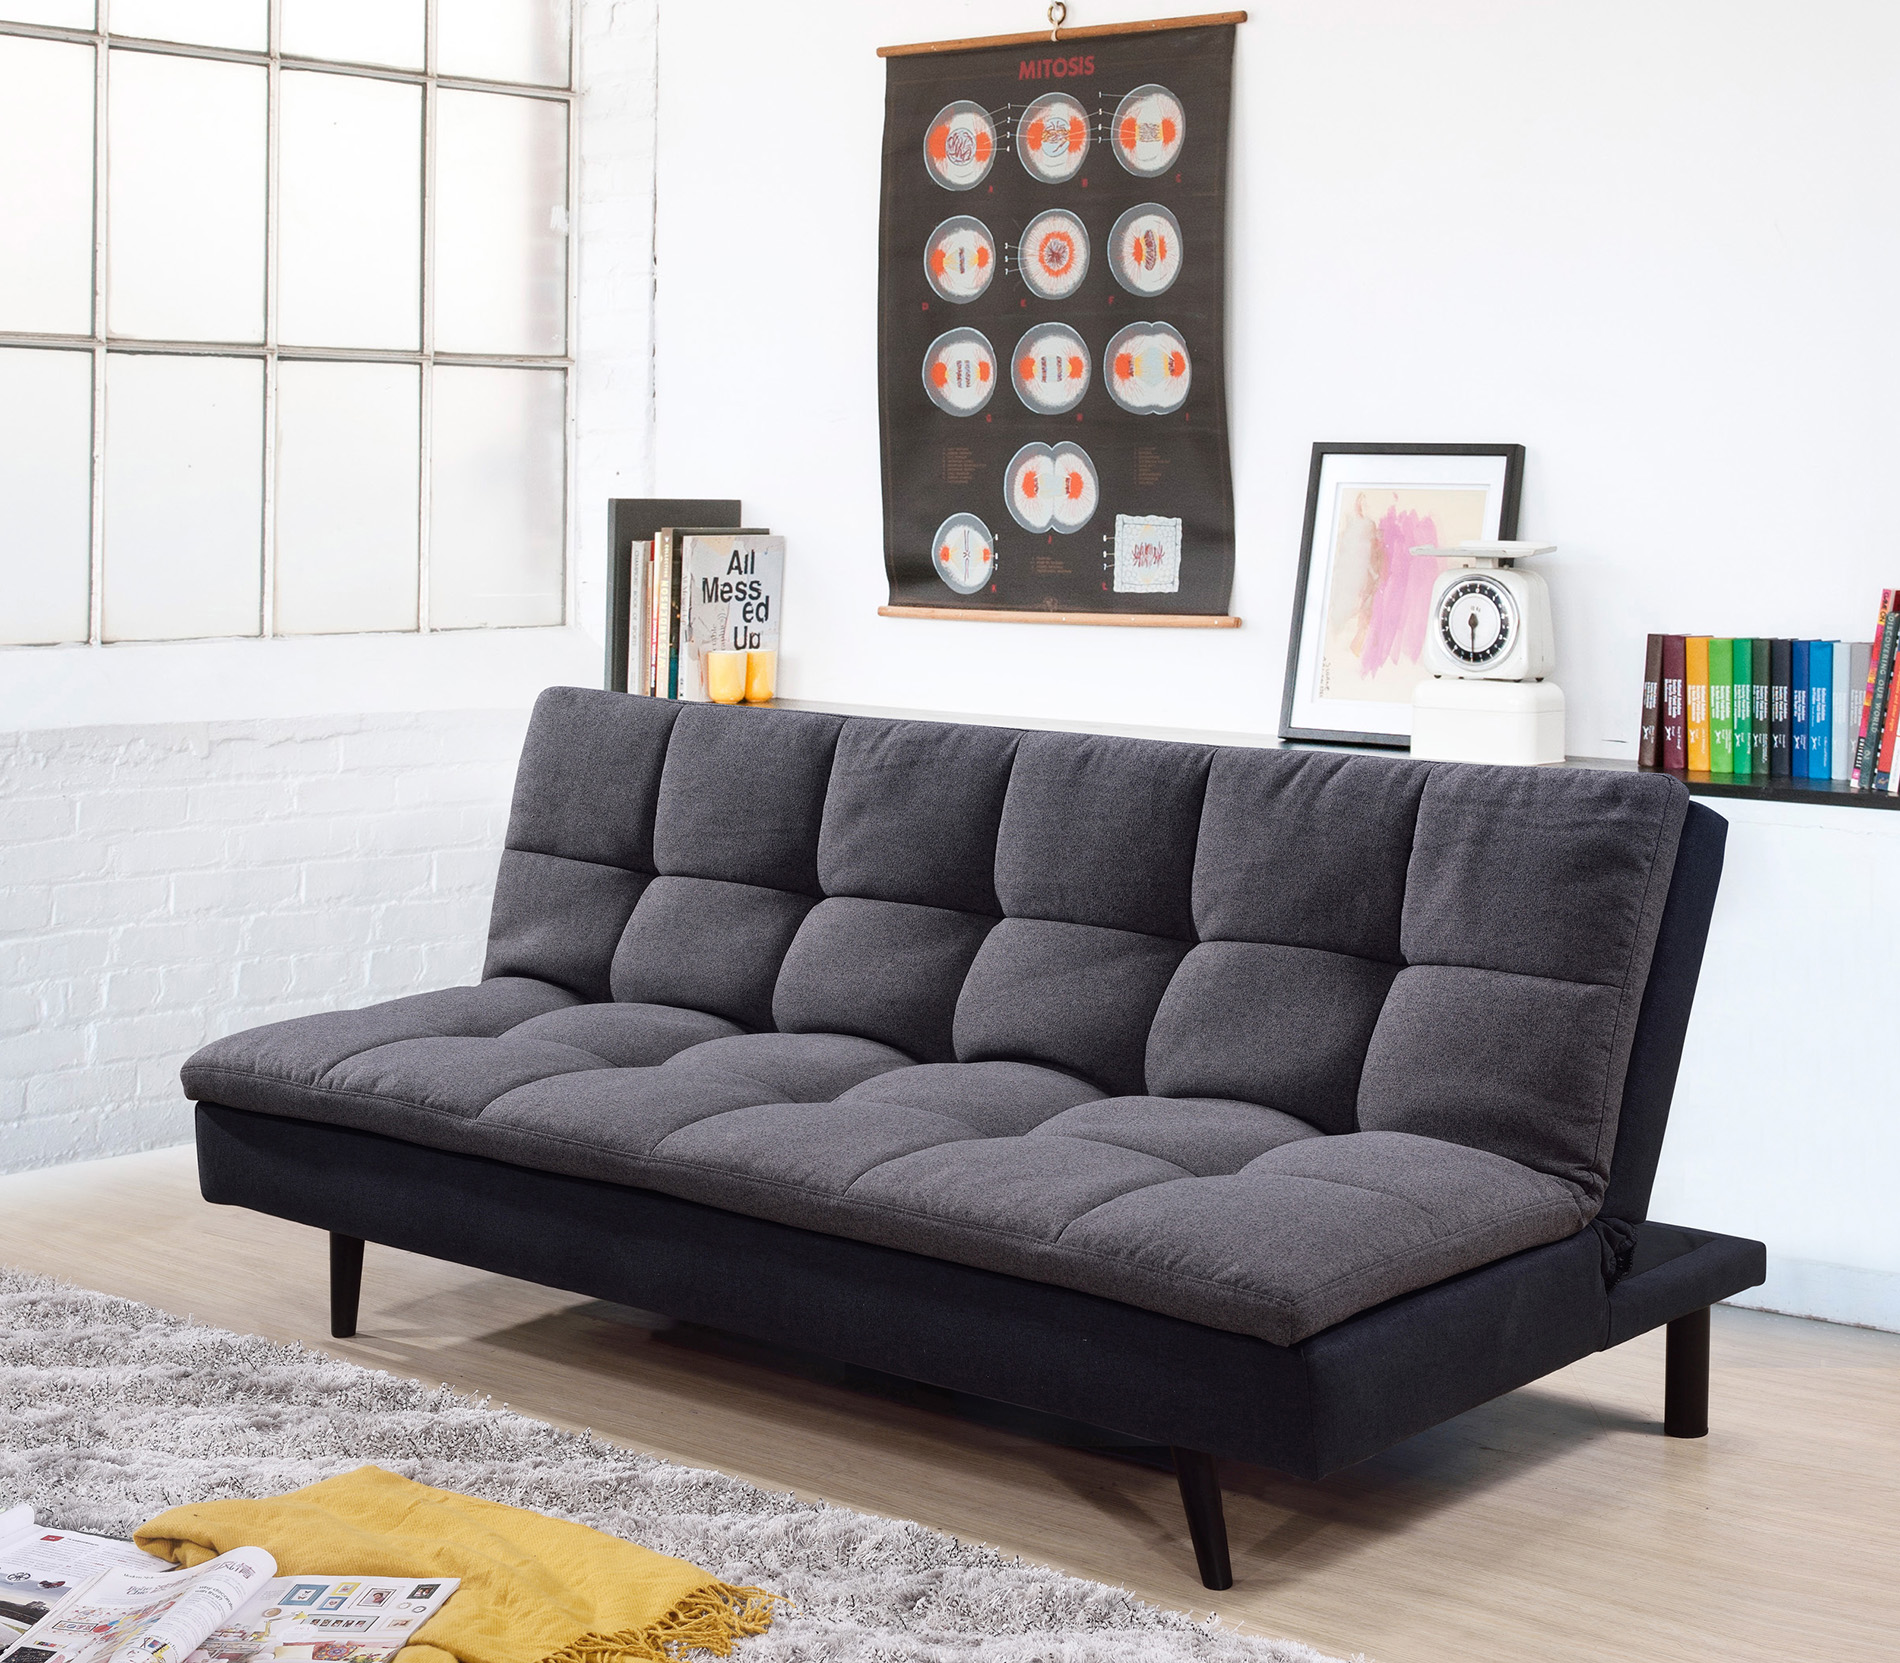 7568 dark gray pillow top sofa bed 7568 dgr milton greens stars lowest price possible with best possible value